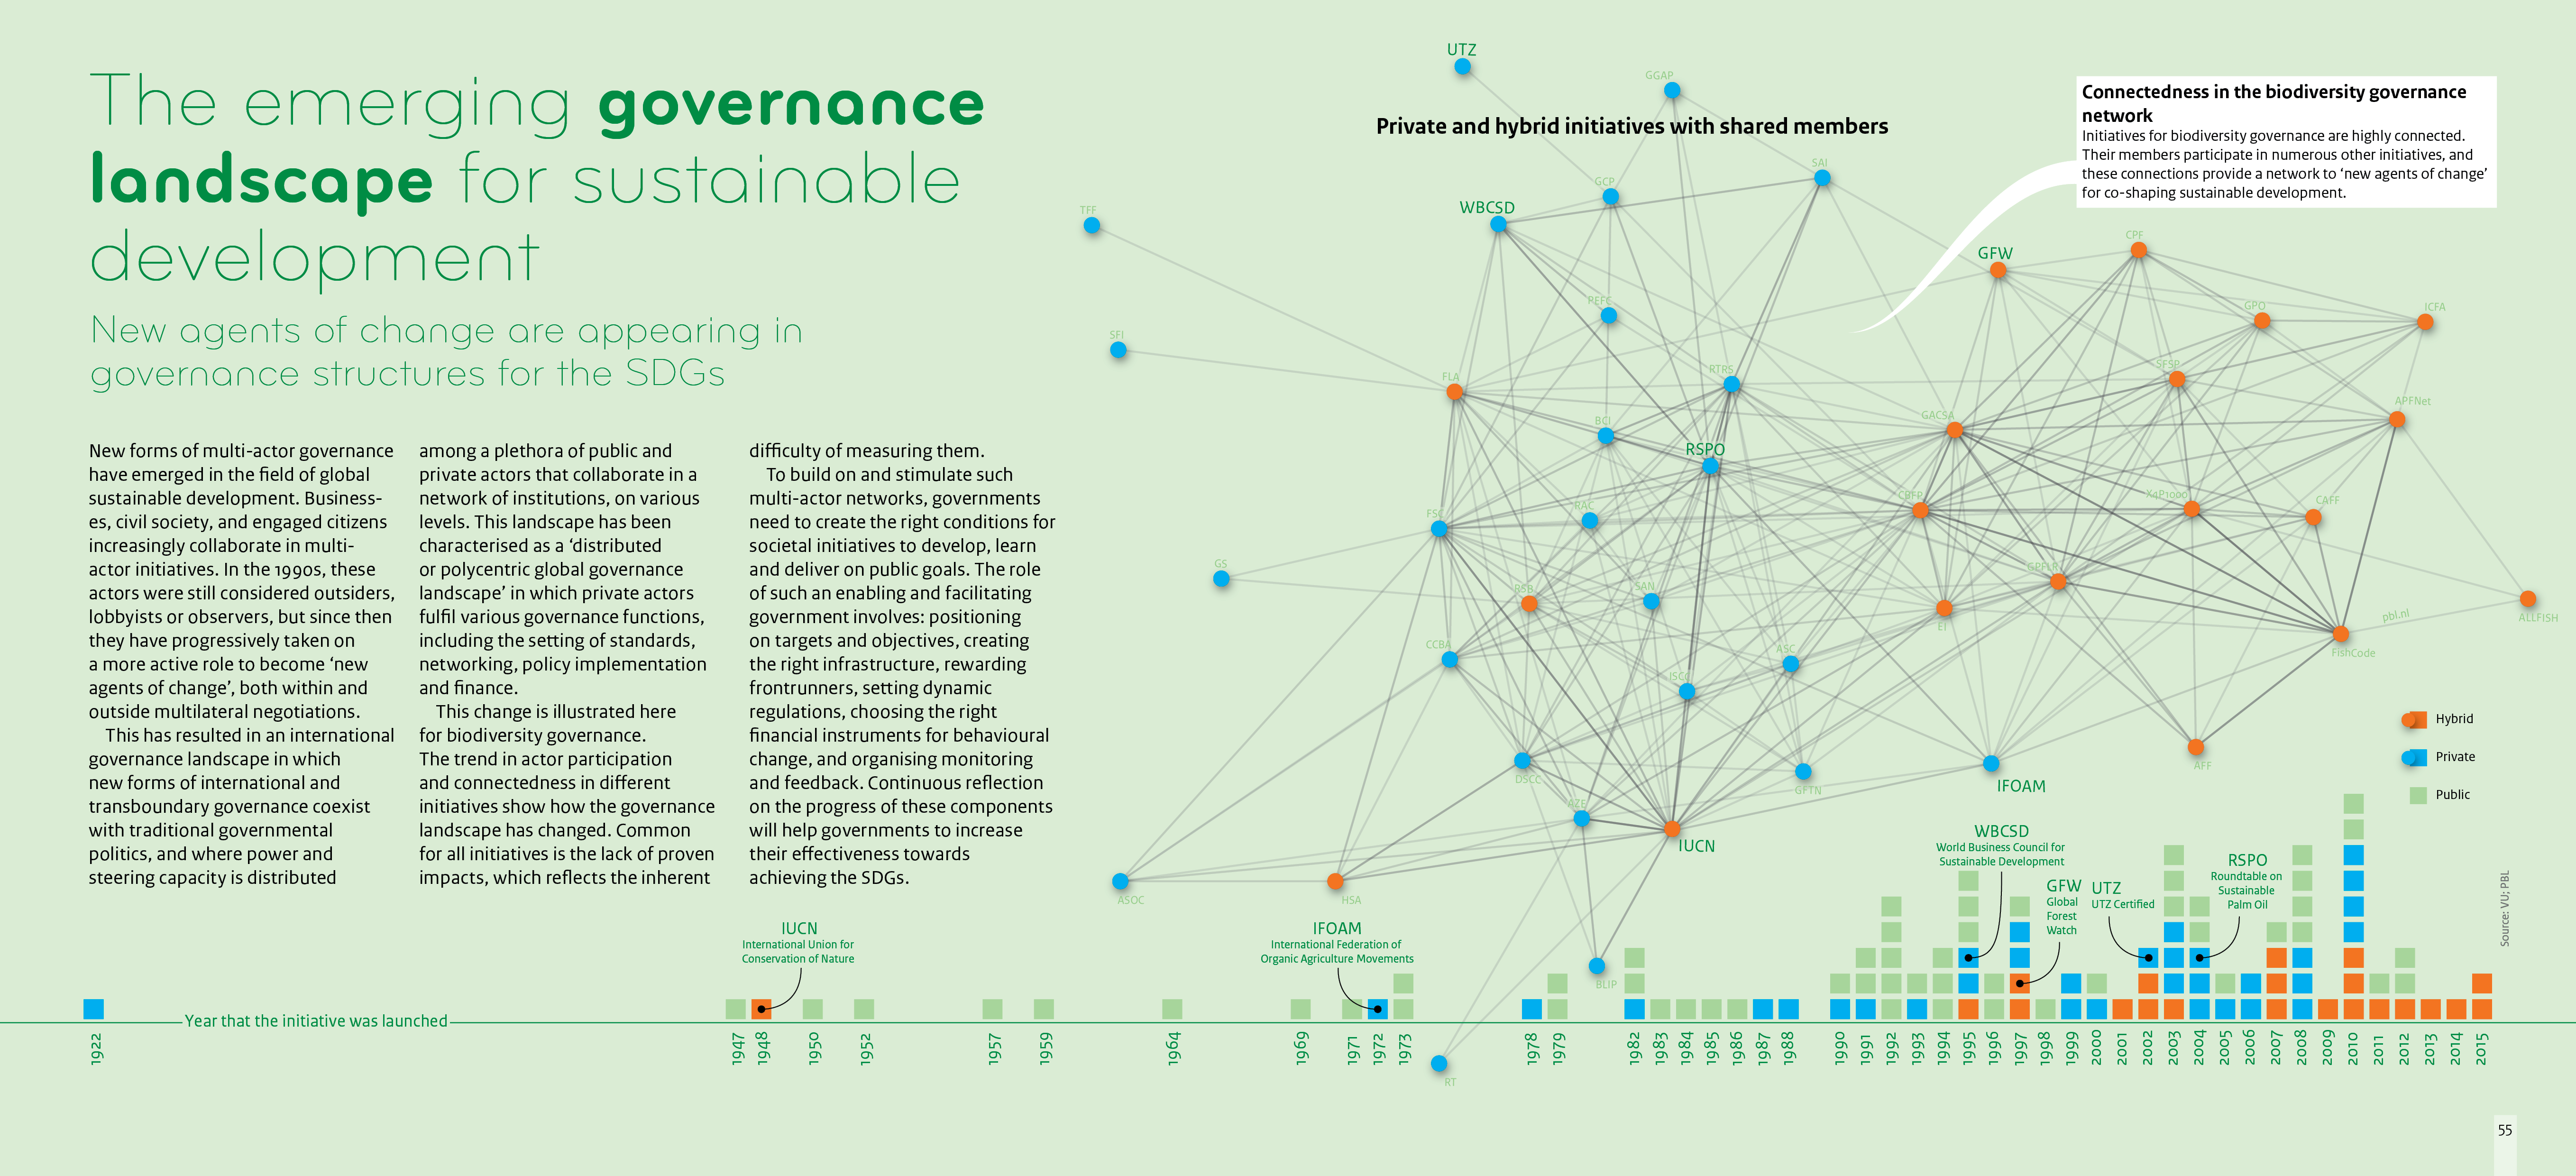 New agents of change are appearing in governance structures. Timeline: shows number of initiatives since 1922 to 2015, and their private, public or hybrid status. These initiatives are increasingly interconnected (web of biodiversity governance example).